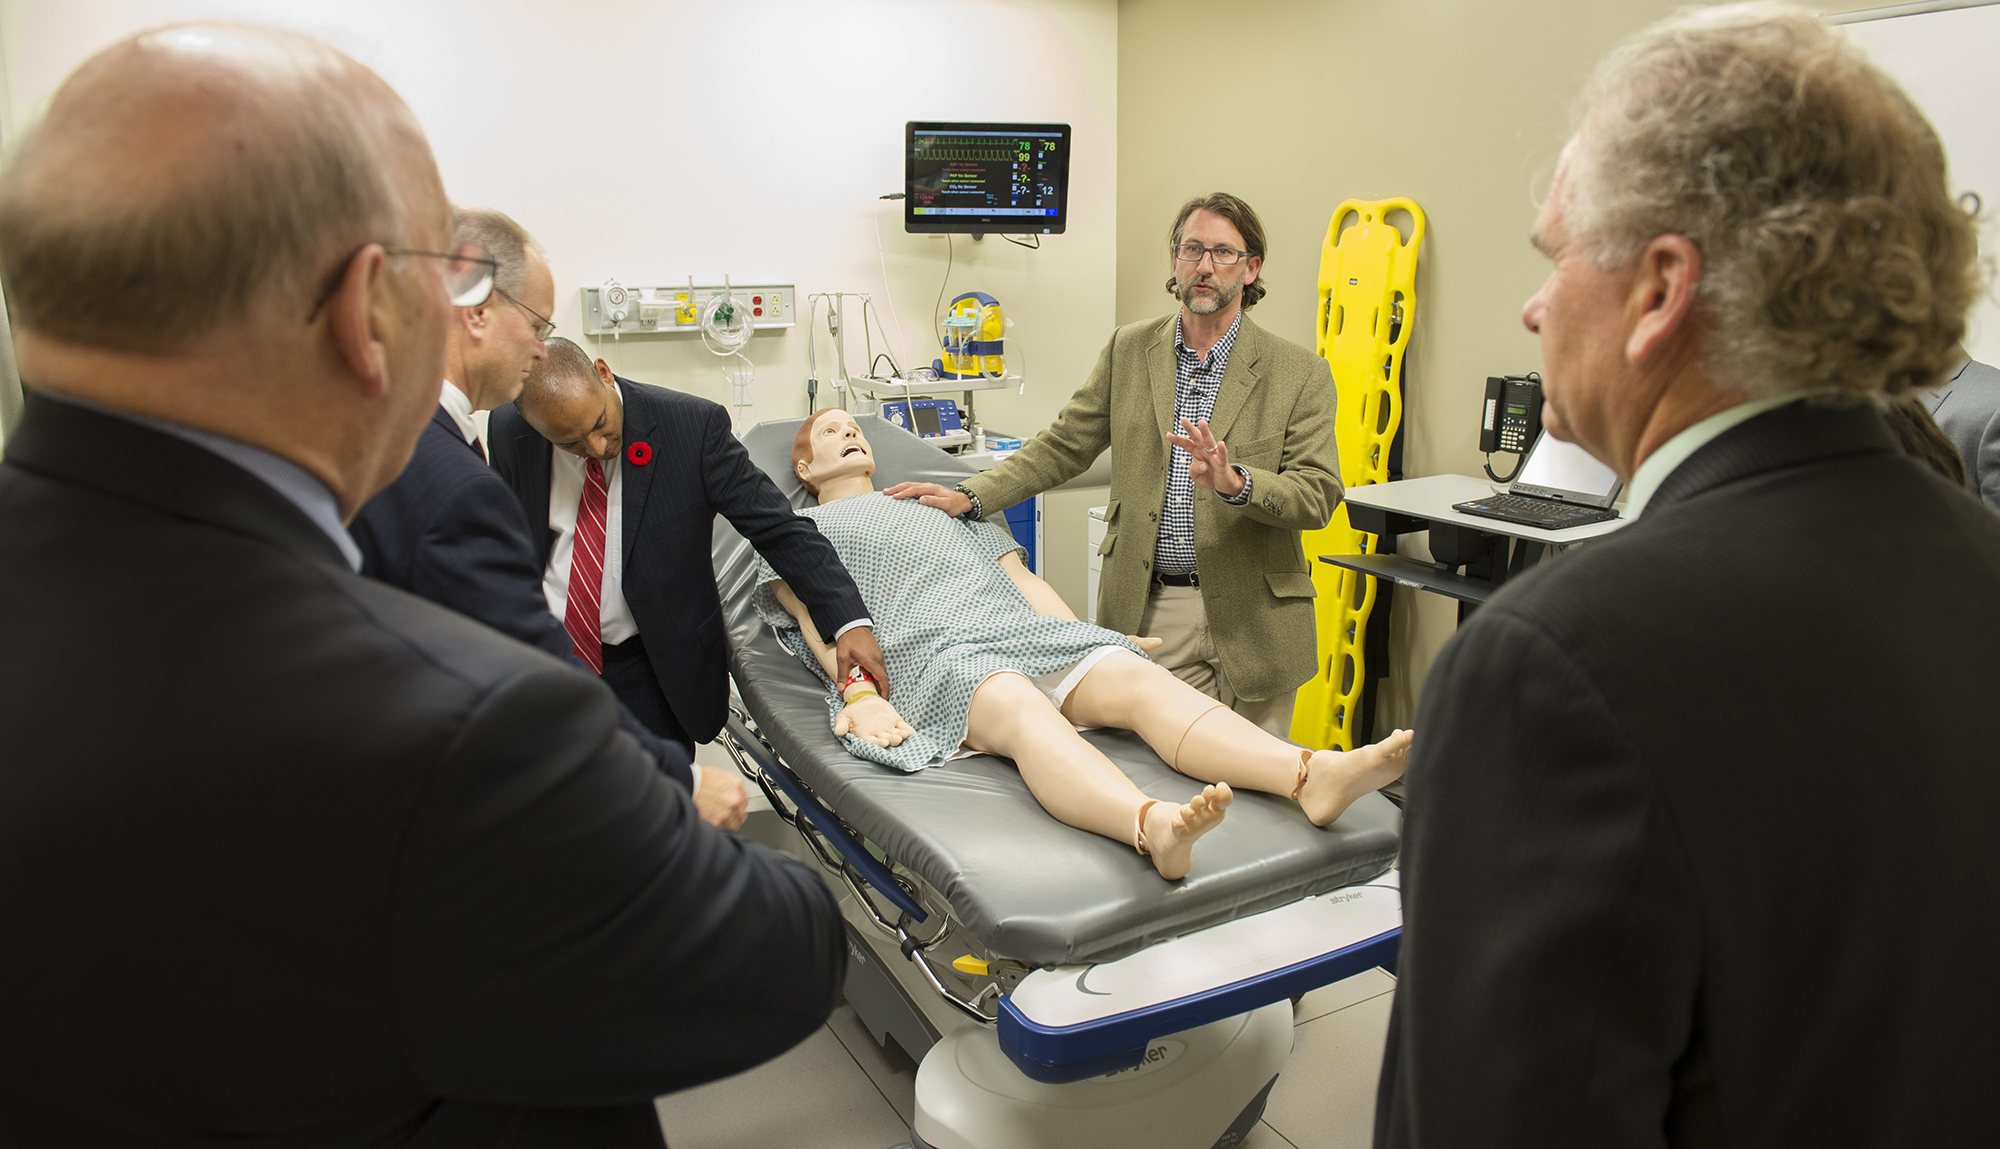 Faculty and staff surround a training manikin in the Sentara Center for Simulation and Immersive Learning at EVMS.